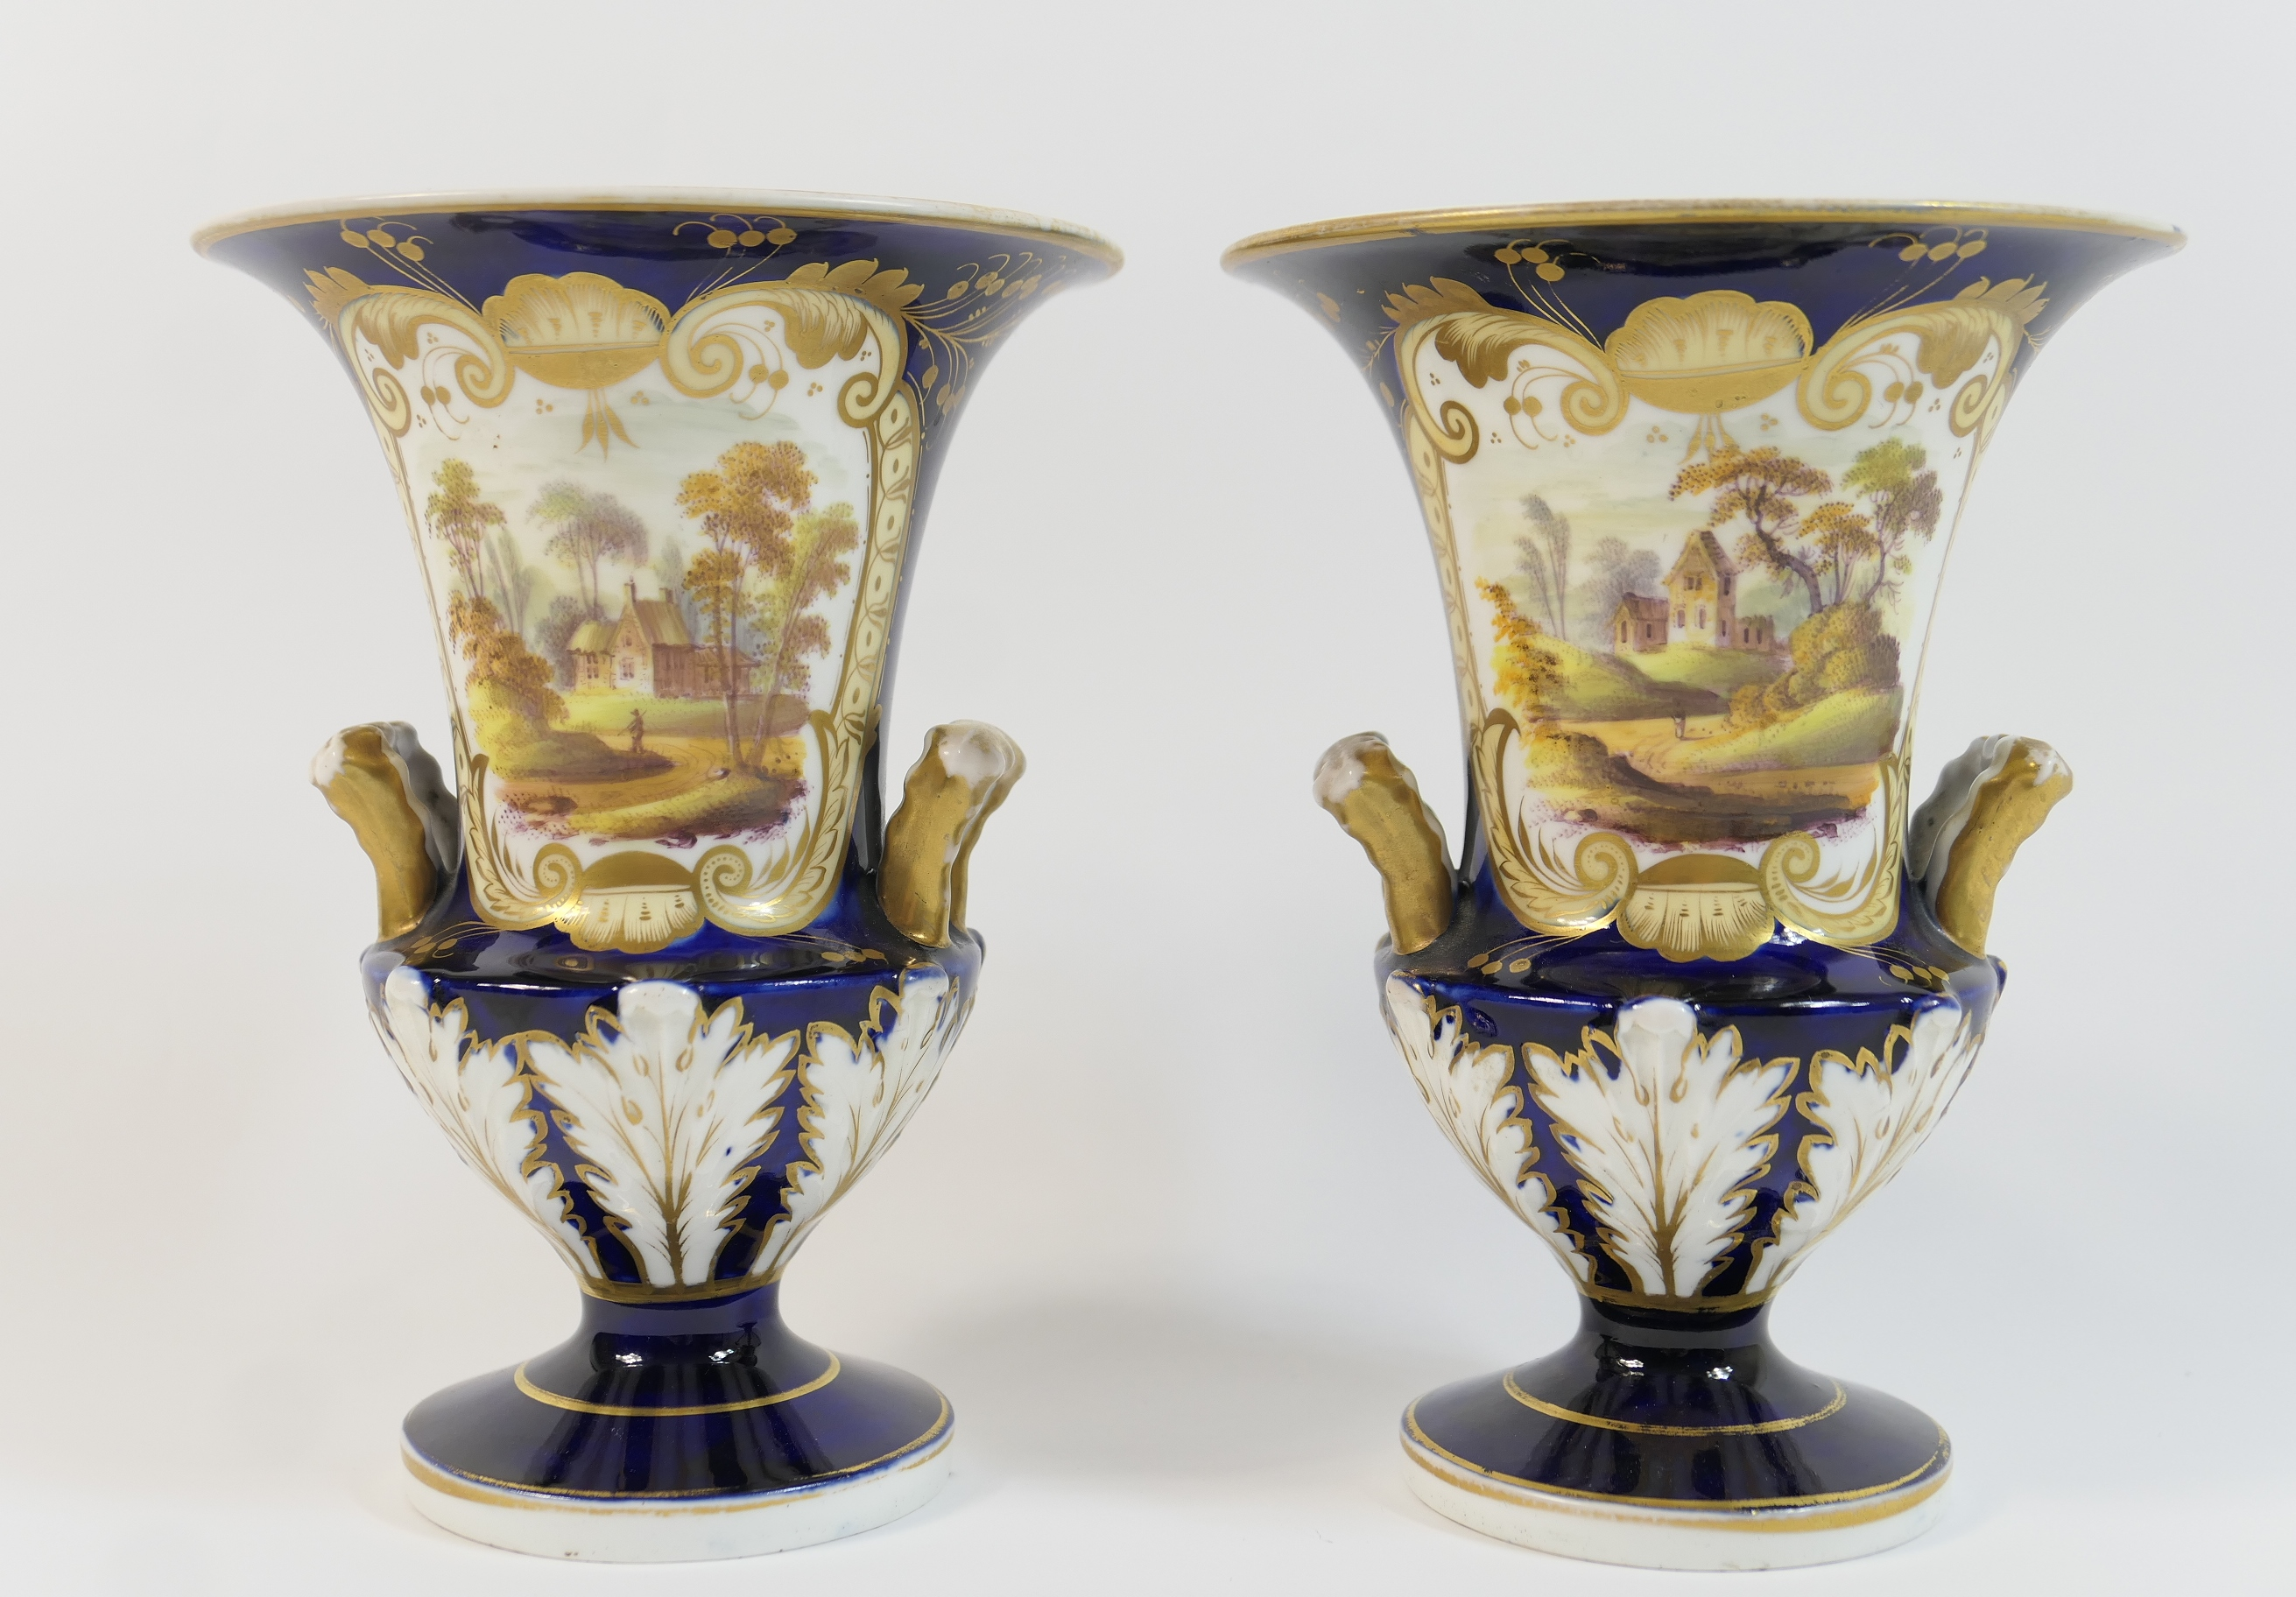 Pair of Victorian china vases, circa 1845, of slender campagna form, decorated with a landscape